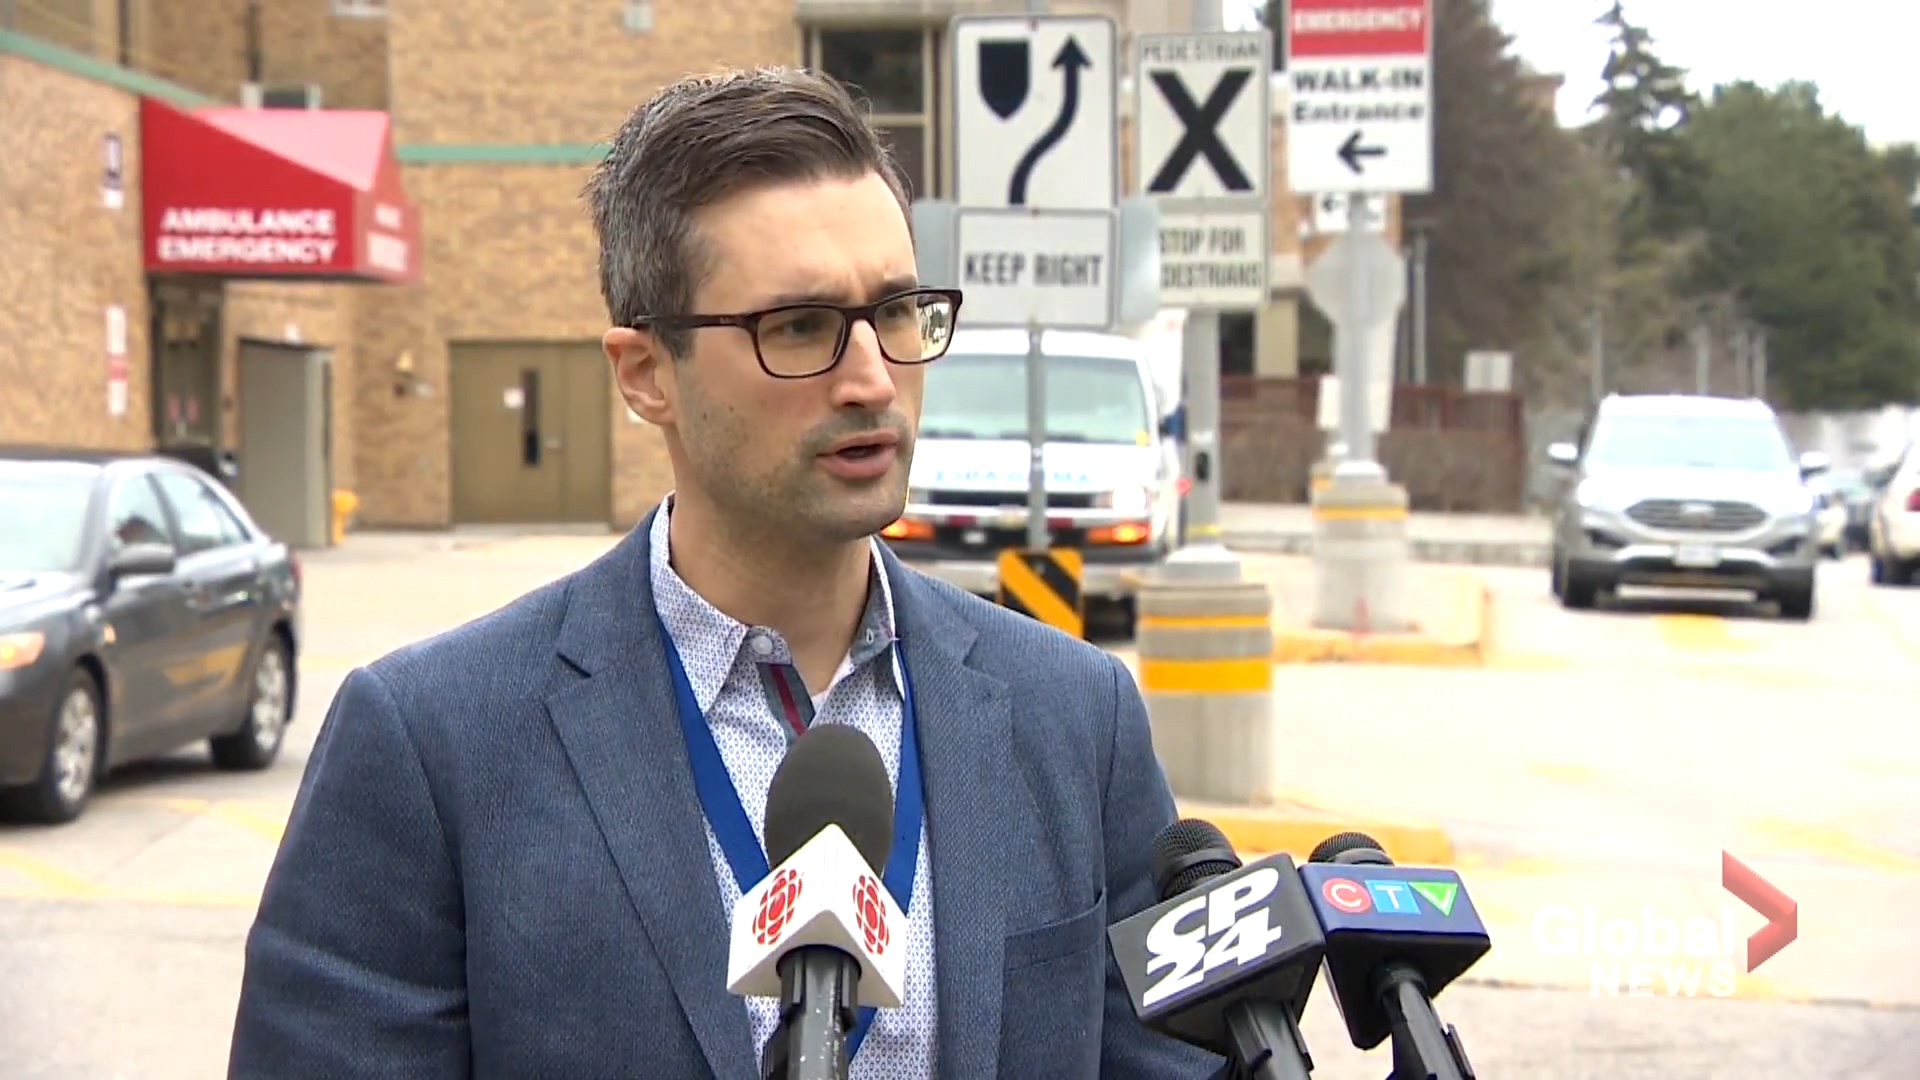 Patient with coronavirus remains in 'stable' condition at Sunnybrook hospital